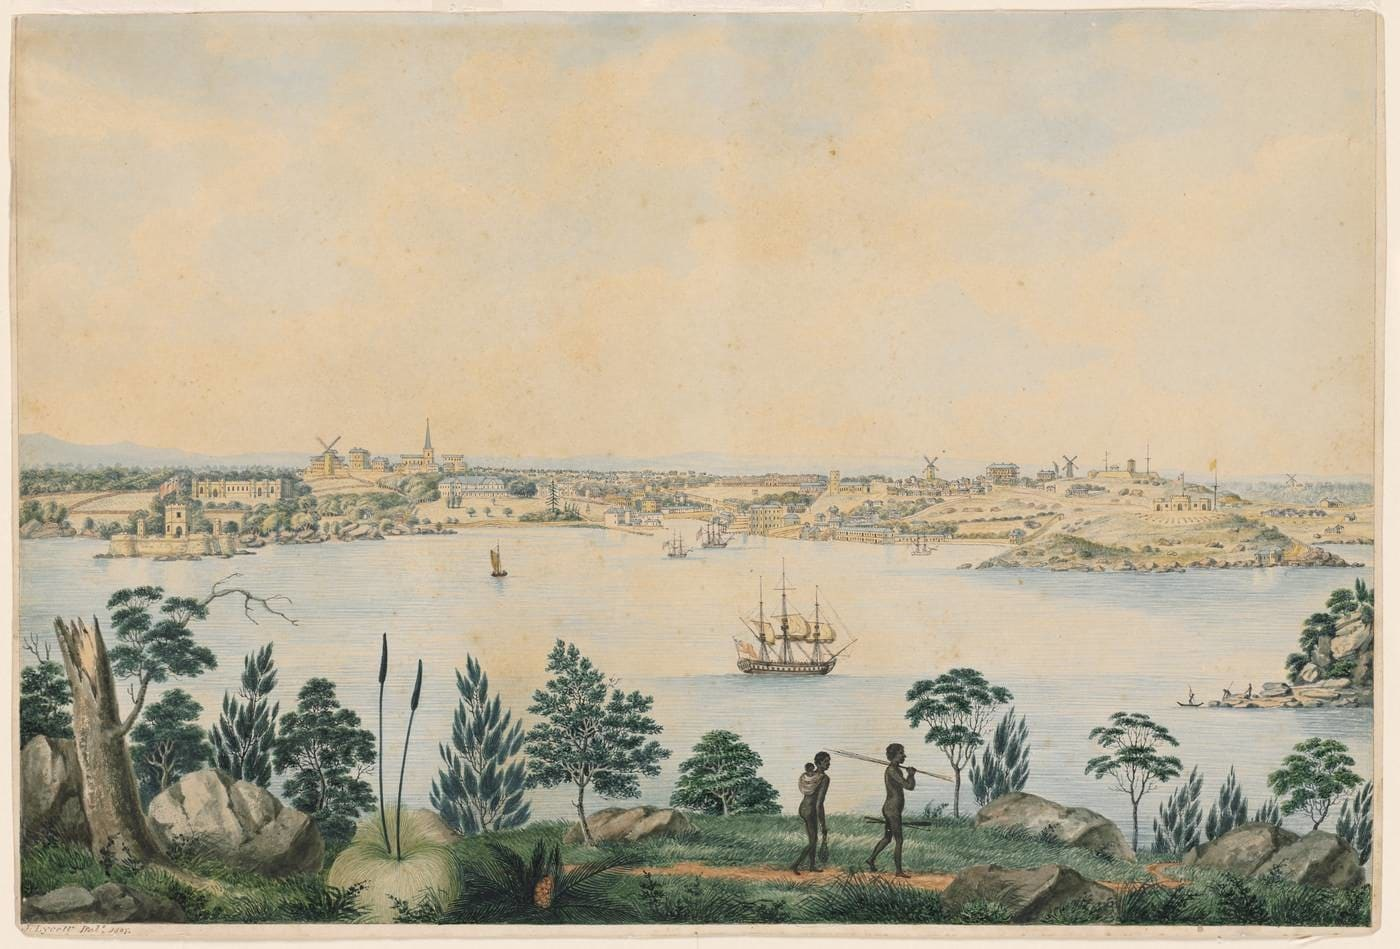 Watercolour painting of Sydney harbour in 1827